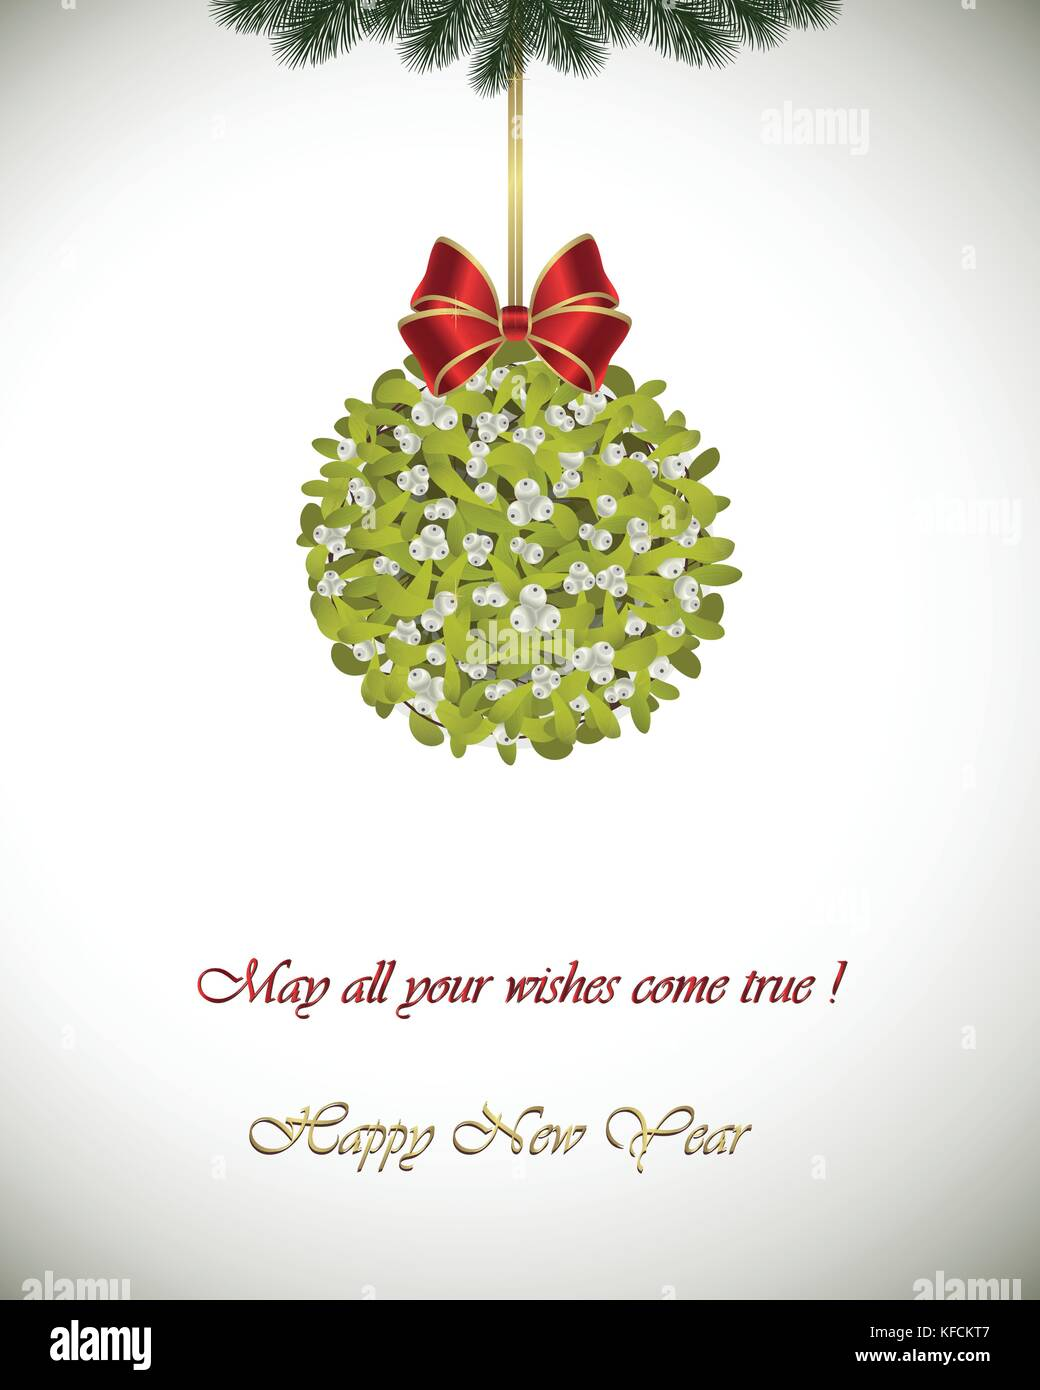 happy new year greeting card mistletoe decoration with red ribbon may all your wishes come true